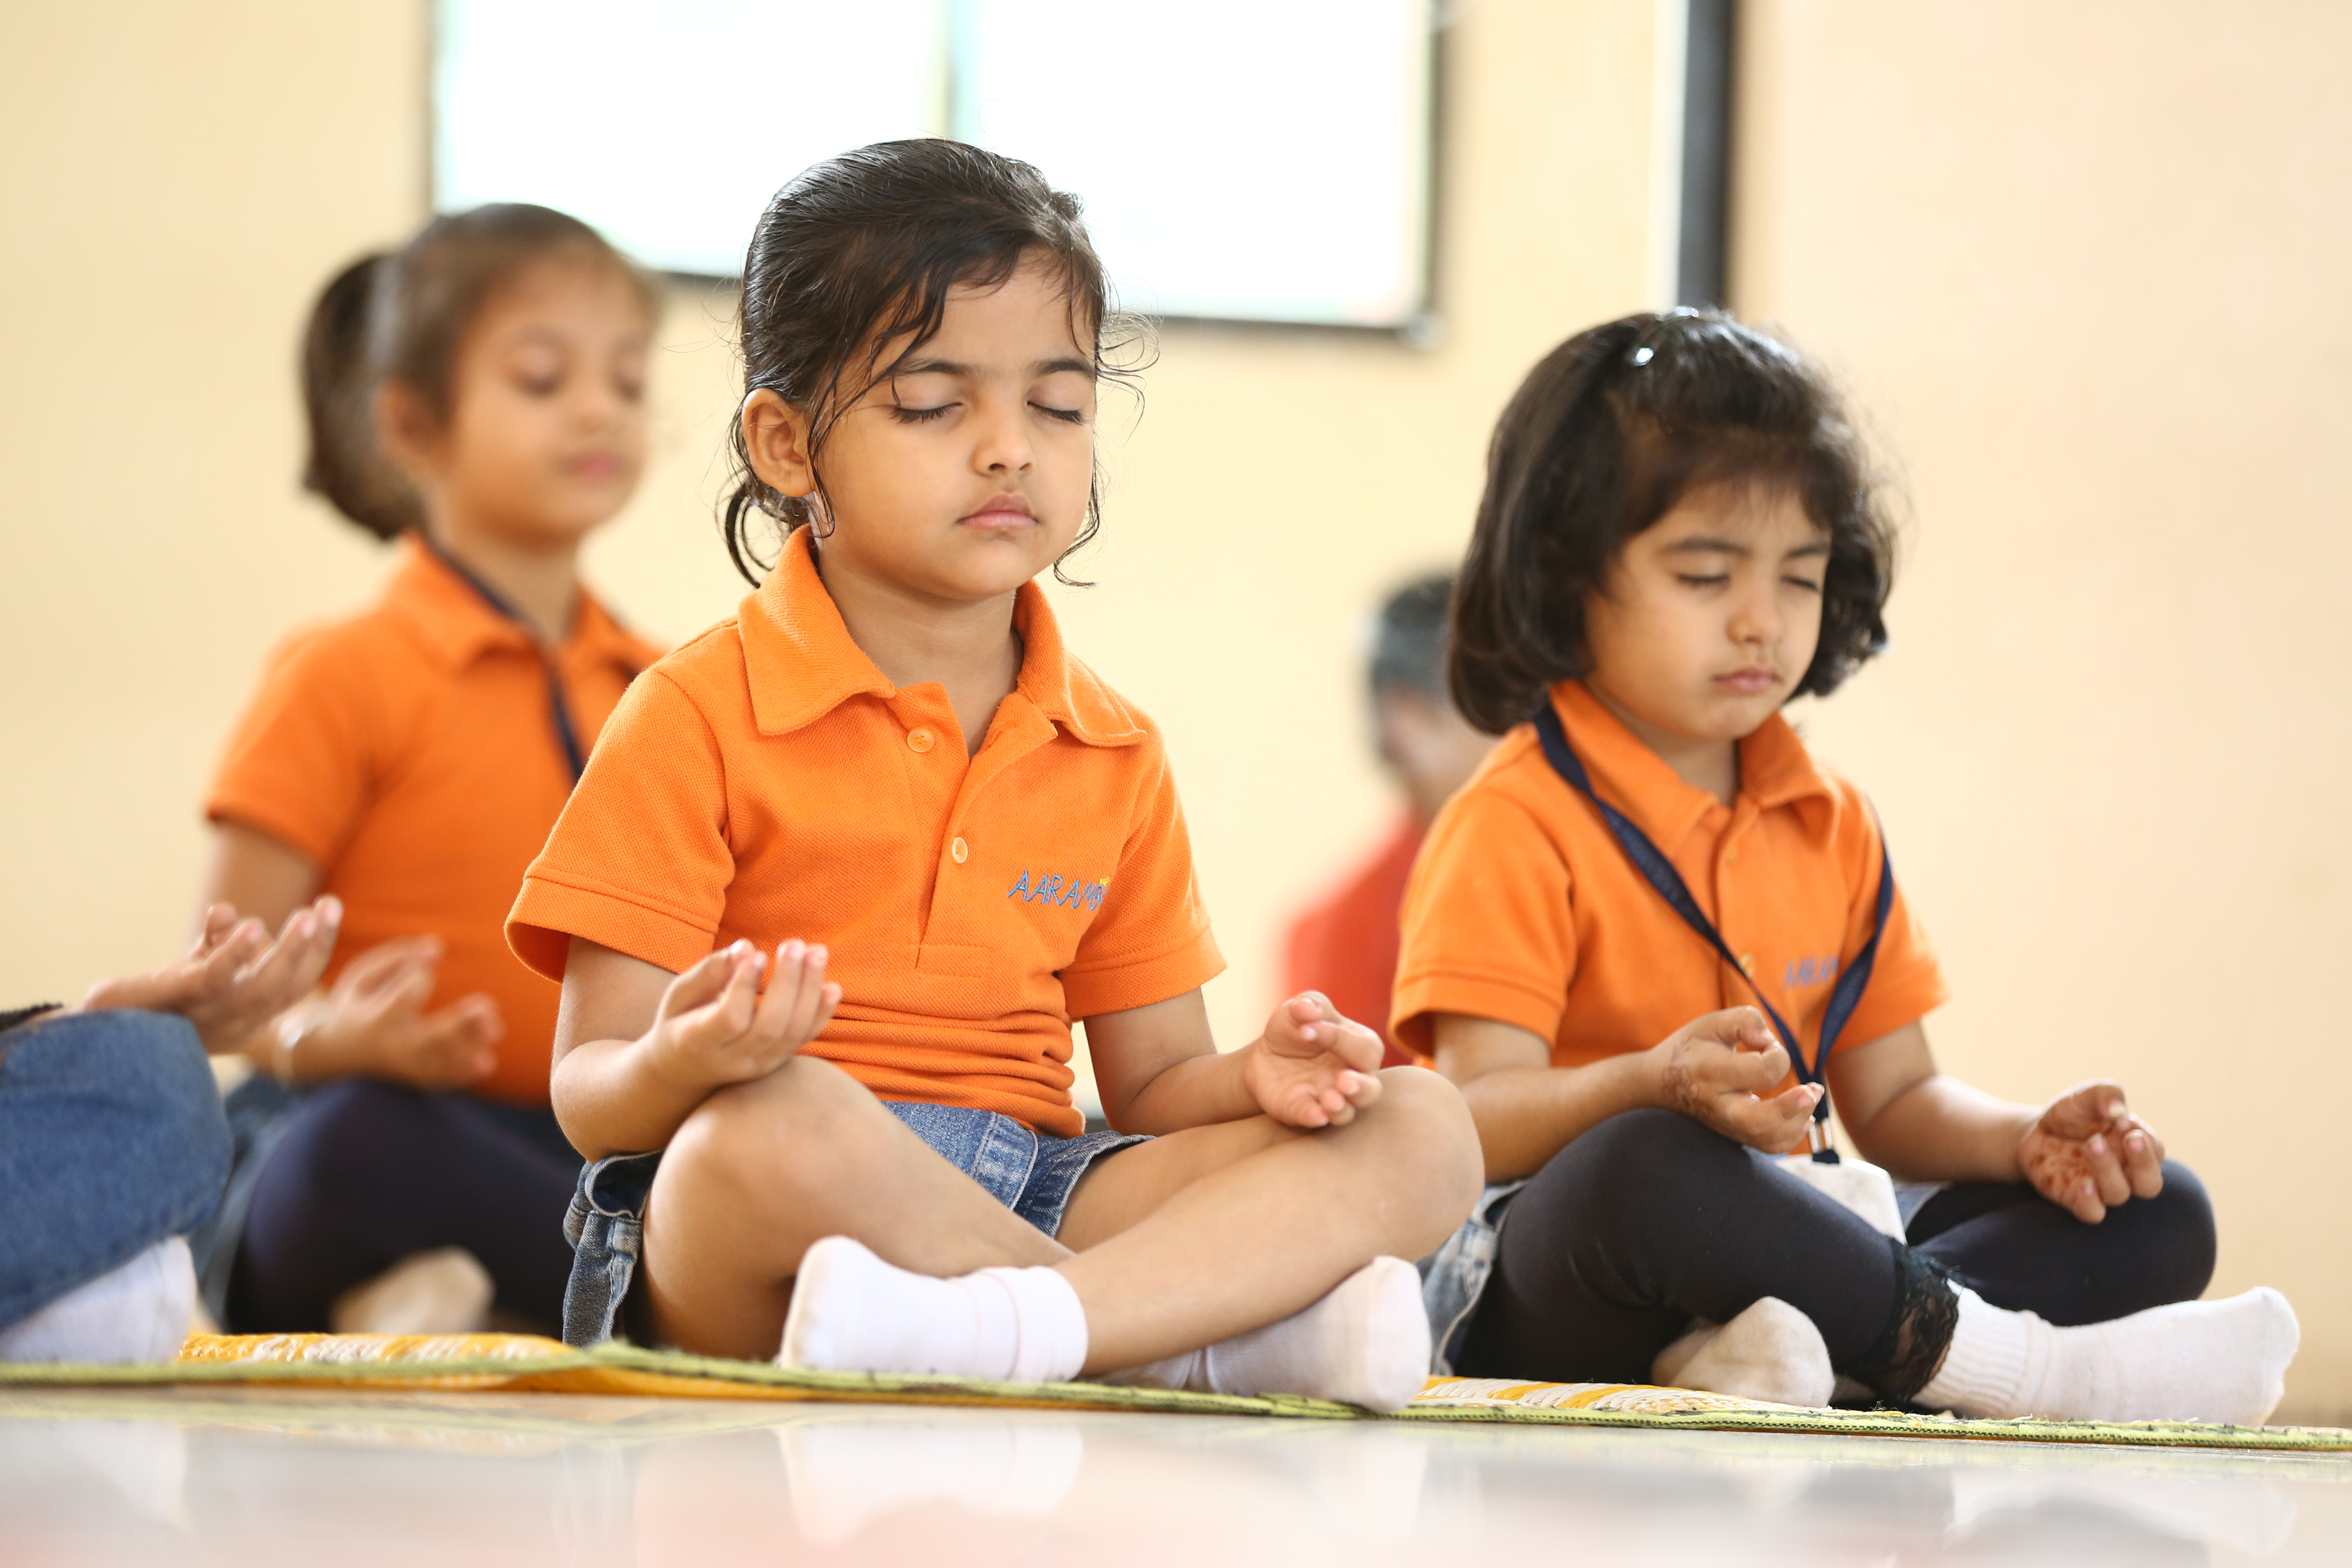 Yoga || The Aarambh School